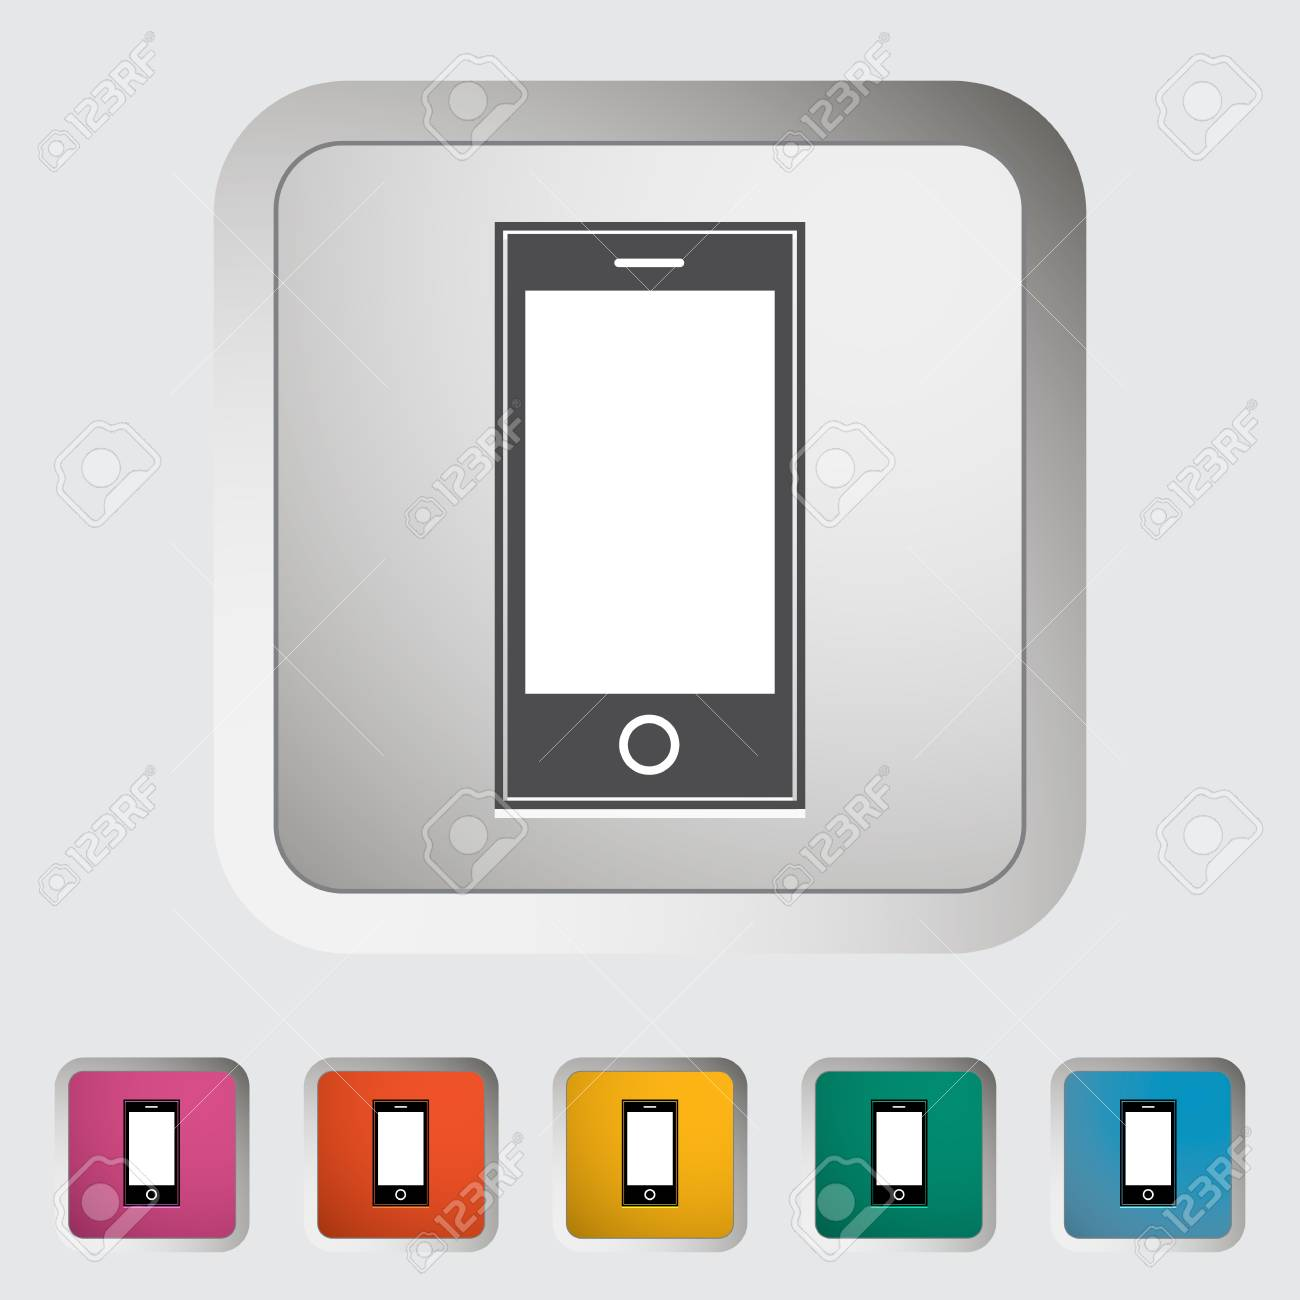 Smartphone single icon illustration Stock Vector - 18512811